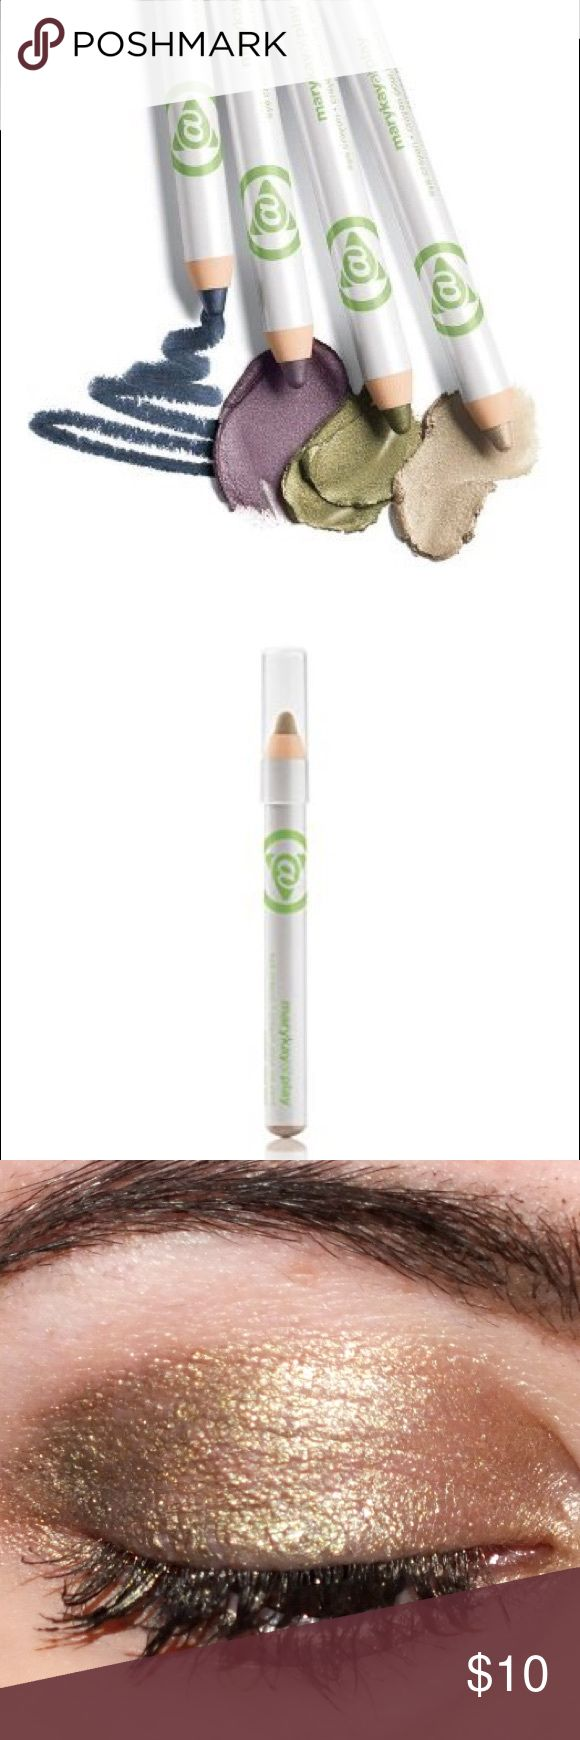 🌷Last Ones!🌷 Mary Kay @ Play Eye Crayon Ultra-creamy texture glides on smoothly without pulling or tugging. Intense, true color payoff that doesn't fade. Shade the lid, smudge along the lashline, or highlight the brow bone or inner corner of the eye.  Note: In electronic media, true colors may vary. Weight: .08 OZ. NET WT./2.5 g Mary Kay Makeup Eyeshadow